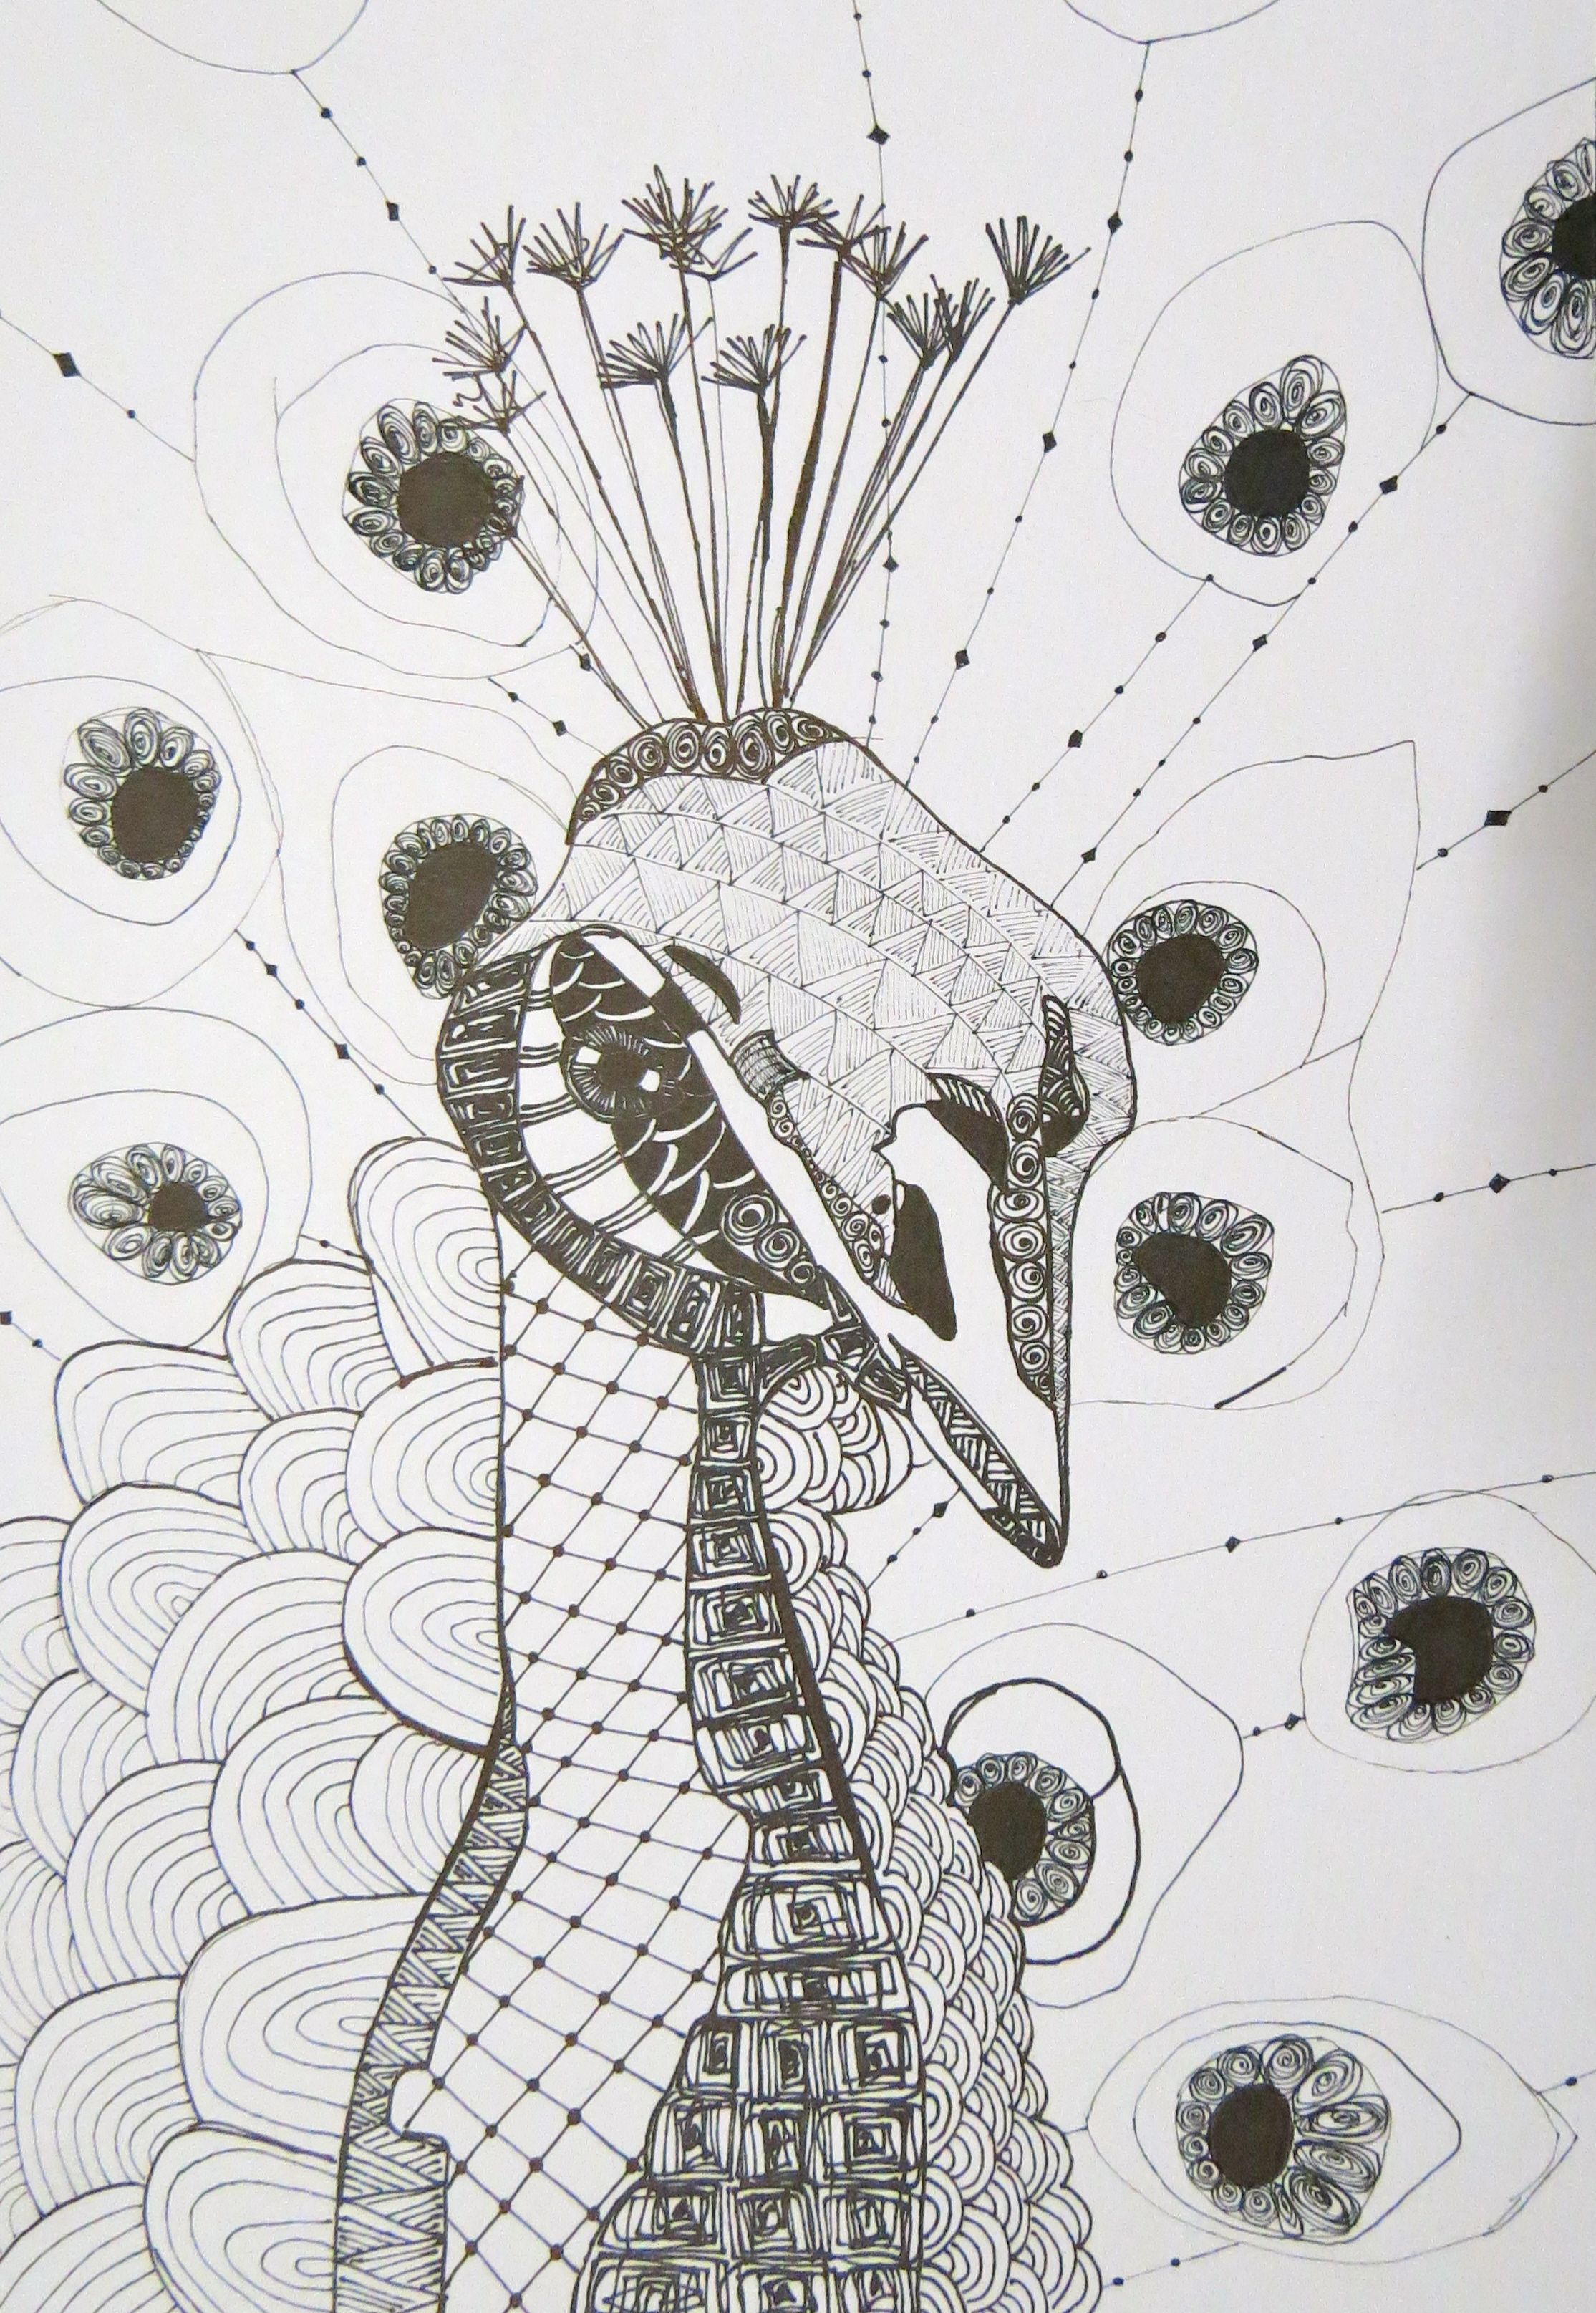 Zentangle art by kat gottke | How to draw and paint, templates and ...